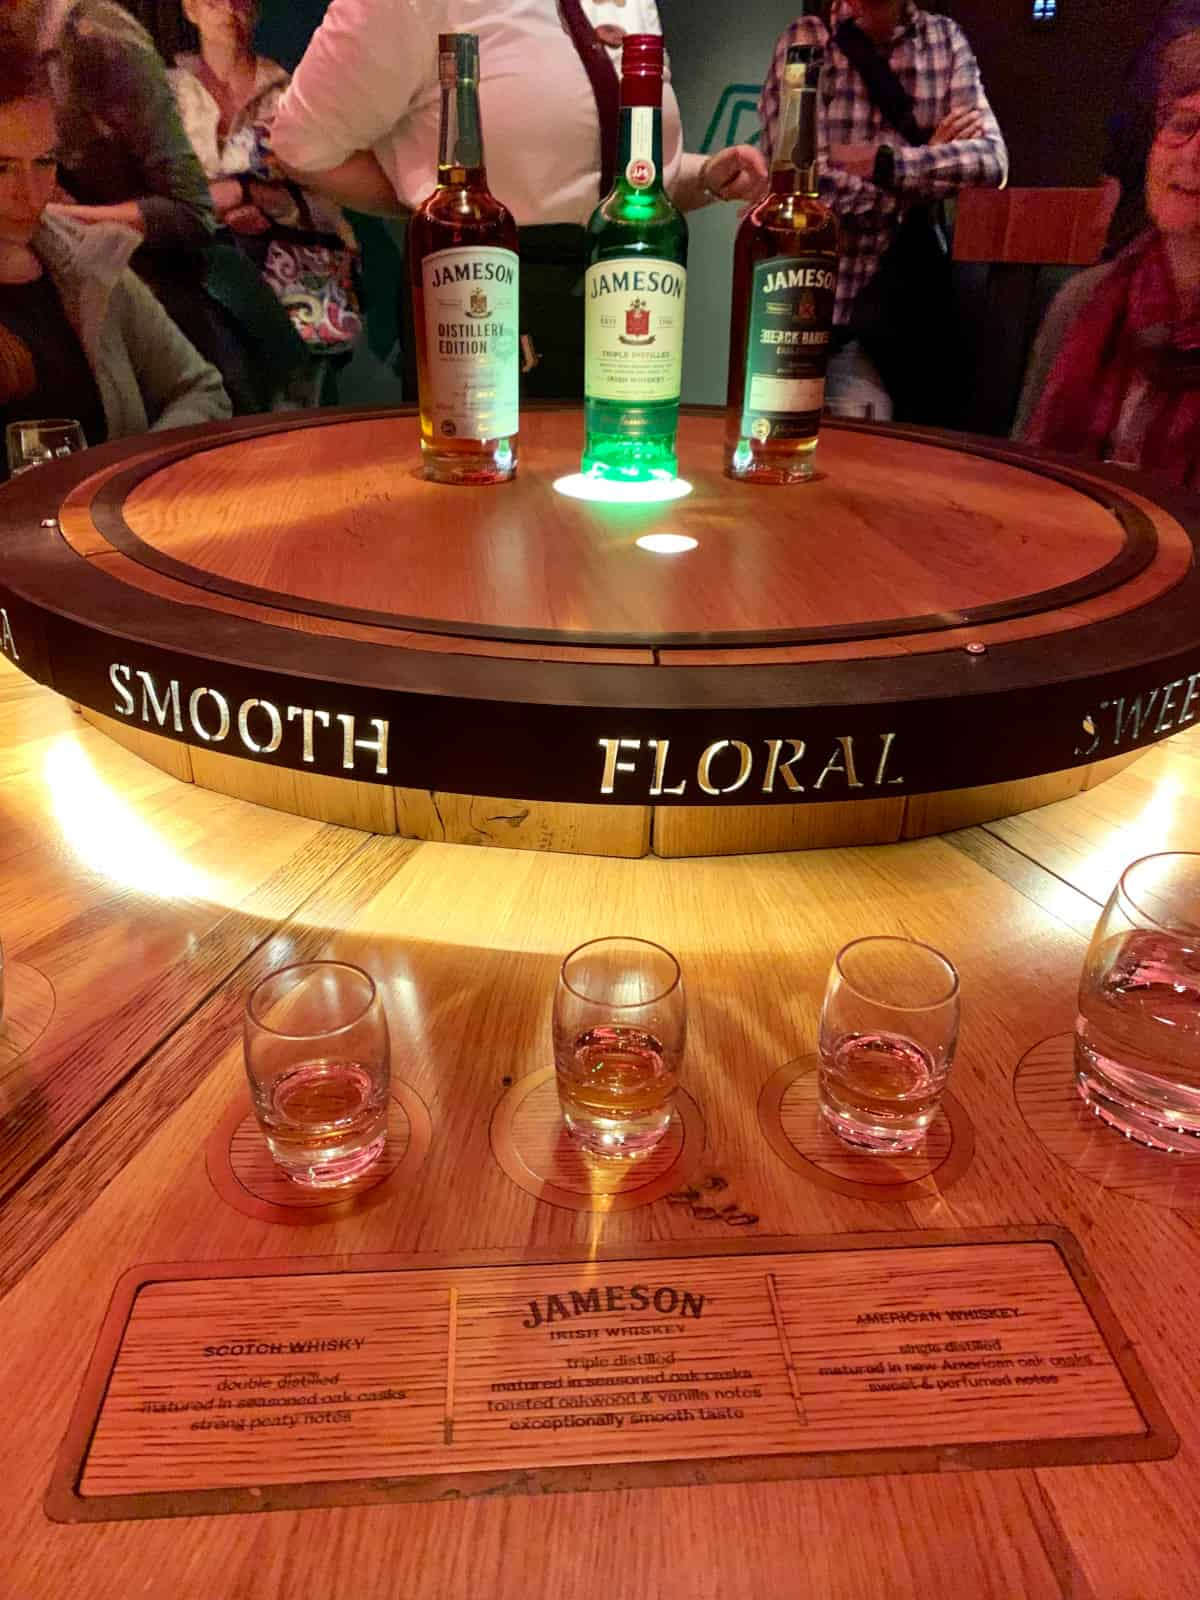 The Jameson tour ends with a blind competitive tasting